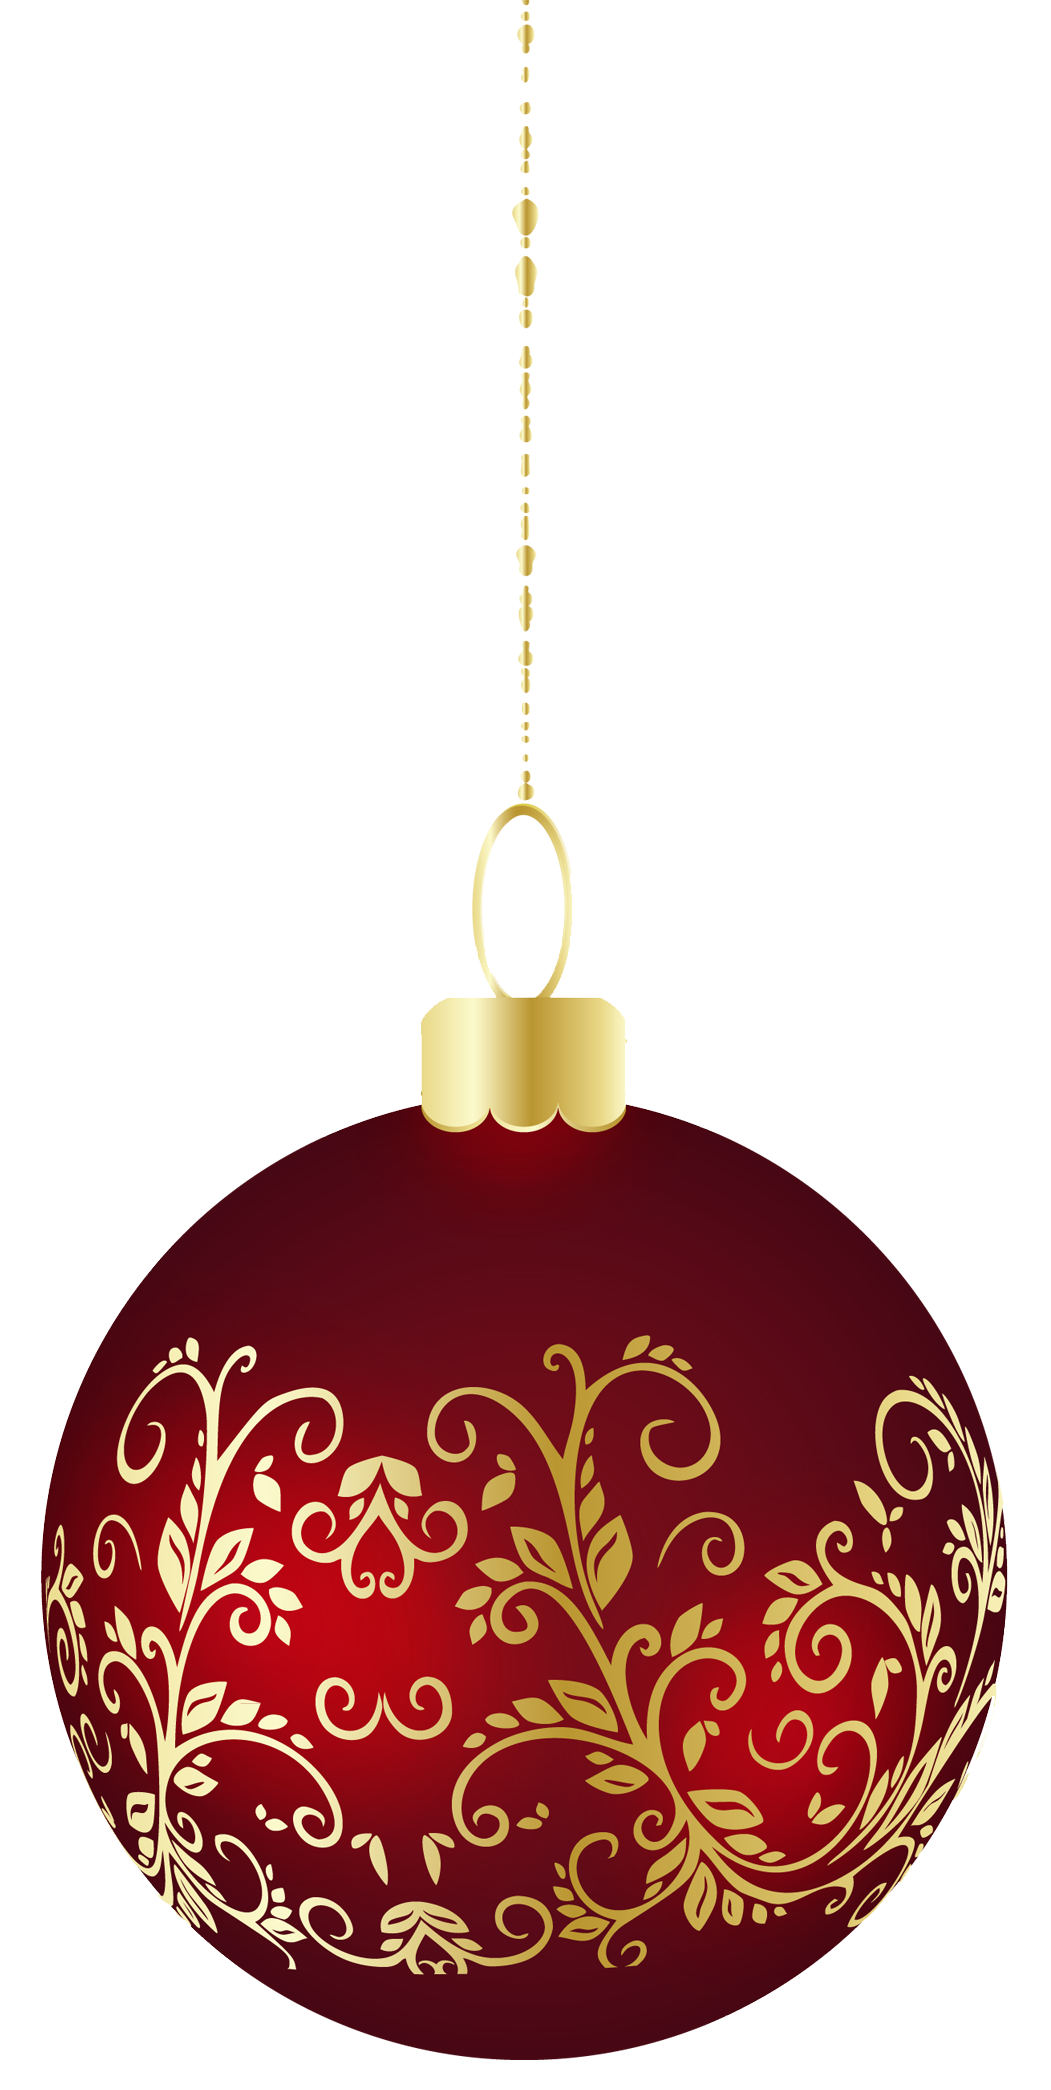 Ornament clipart file. Large transparent christmas ball